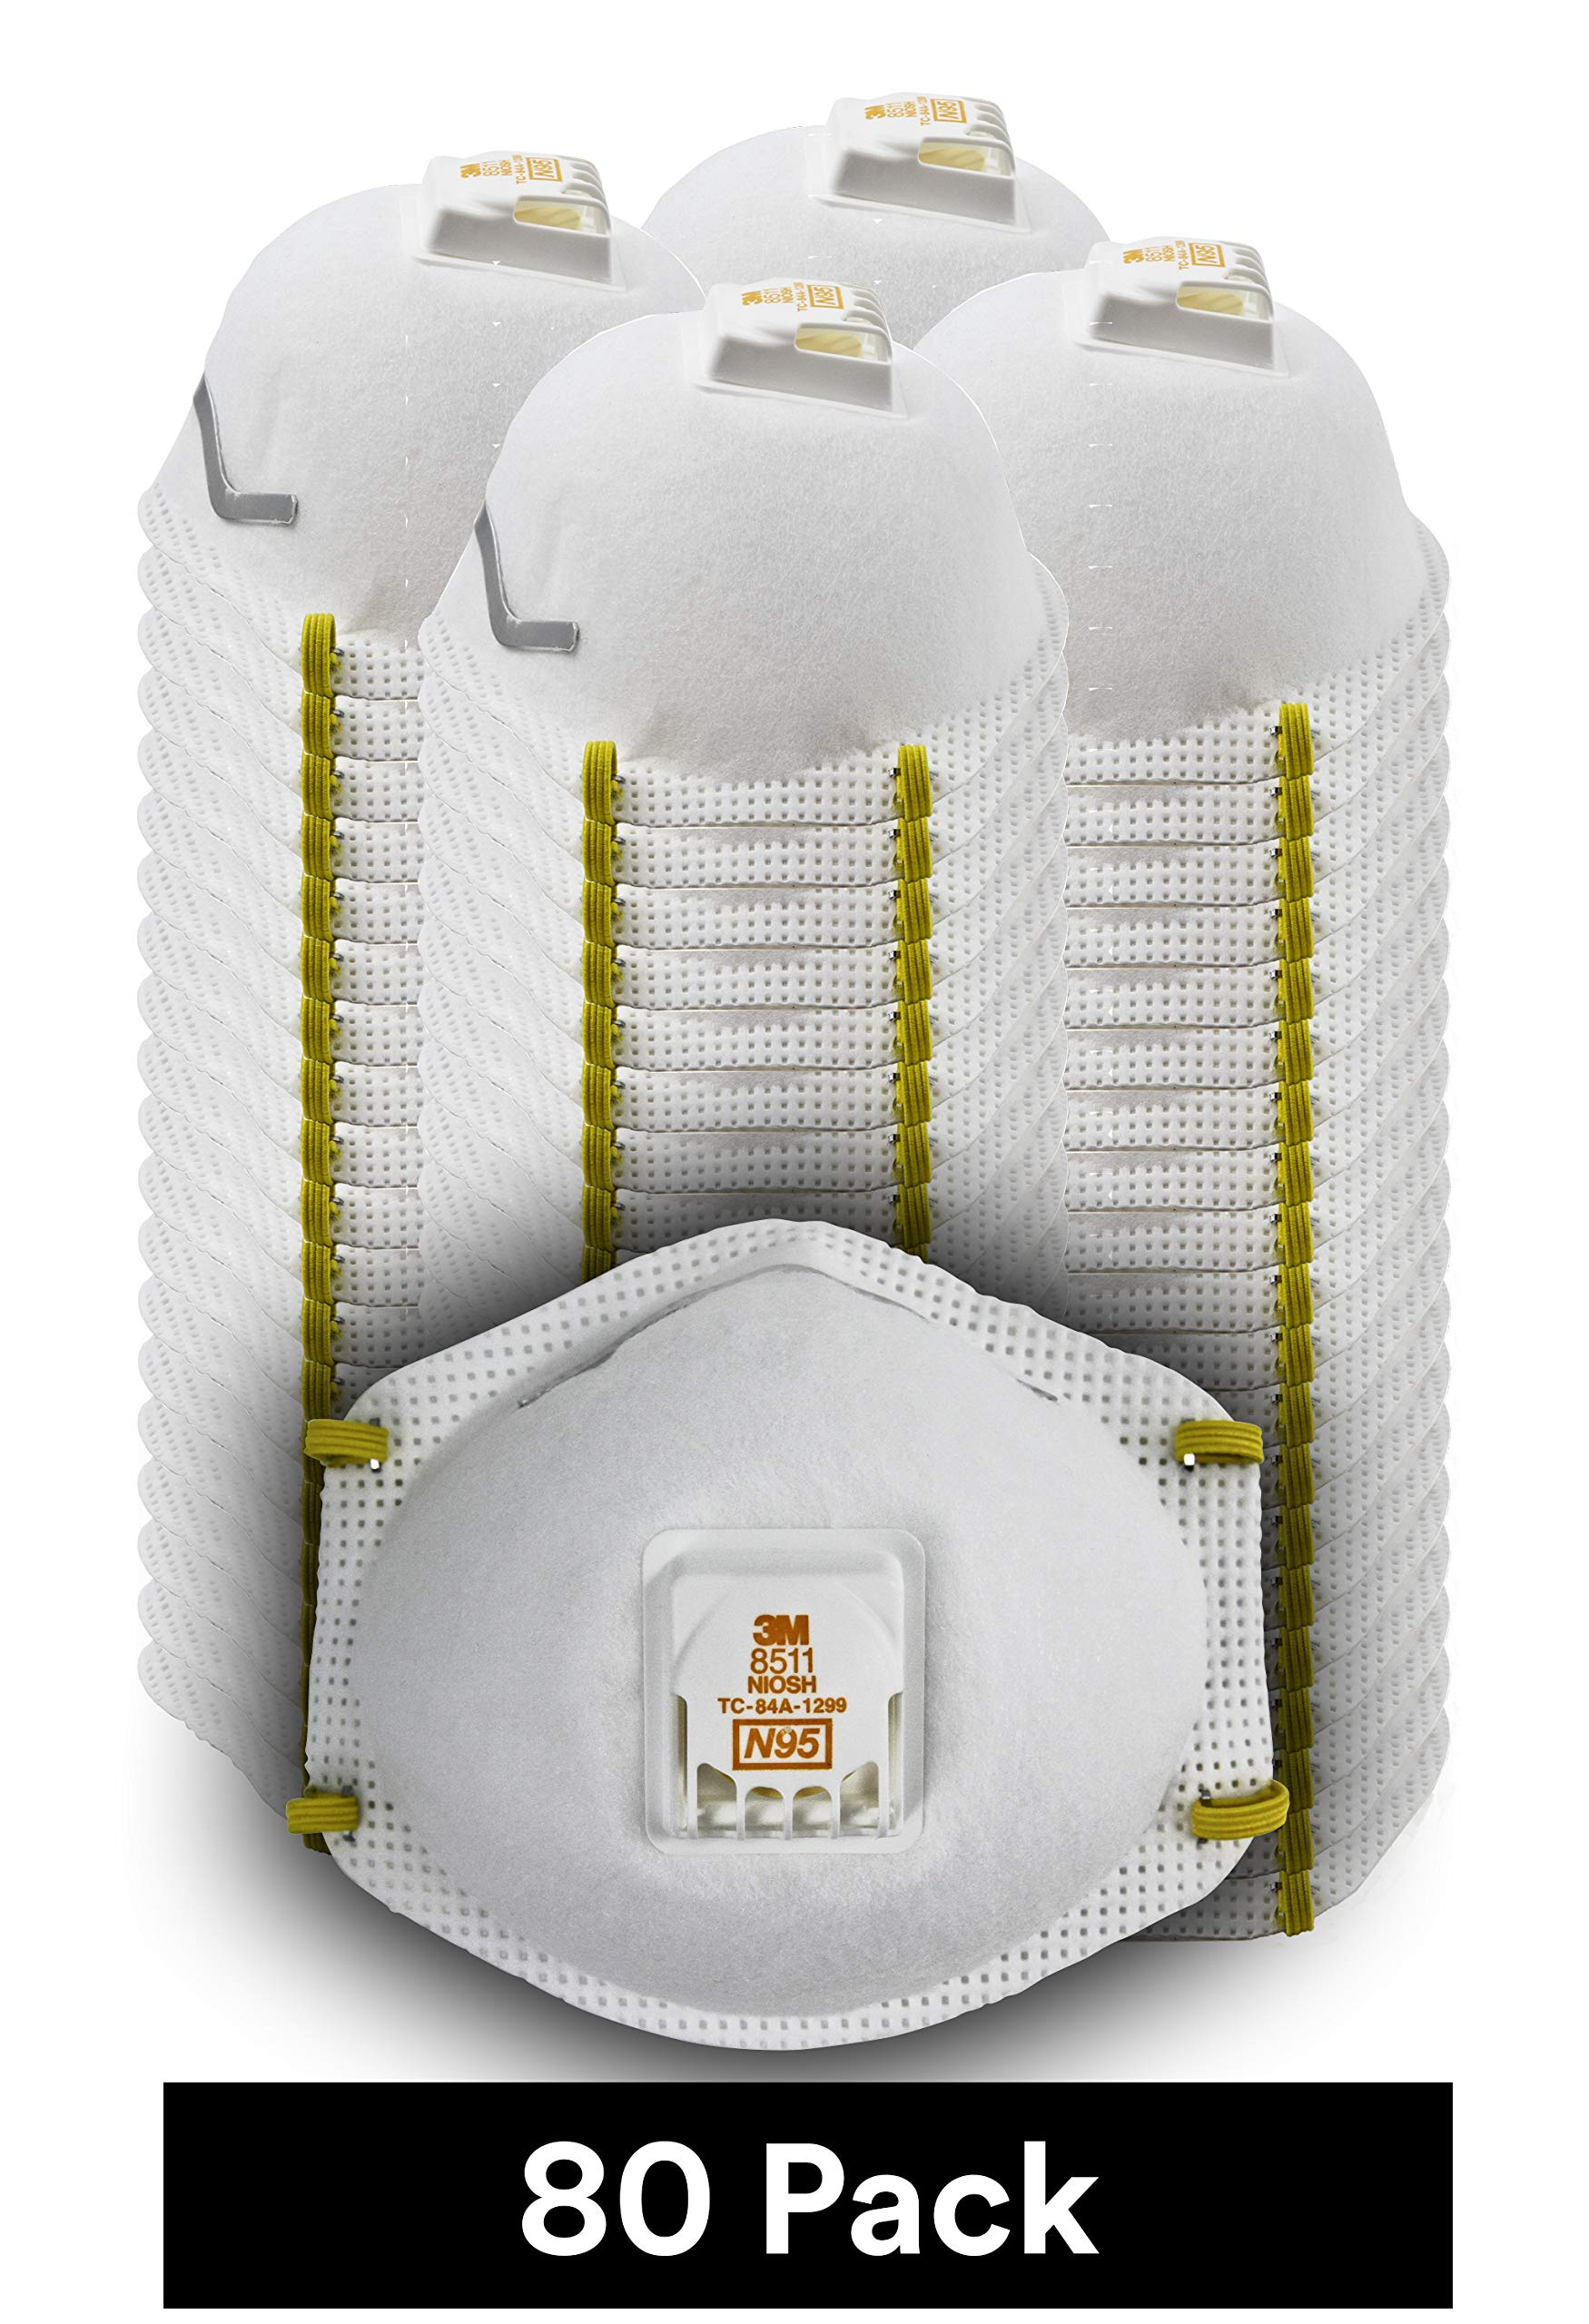 3M 8511 Particulate Disposable Respirator, N95, Grinding, Sanding, Sawing, Sweeping, Dust, Smoke, 80/Pack